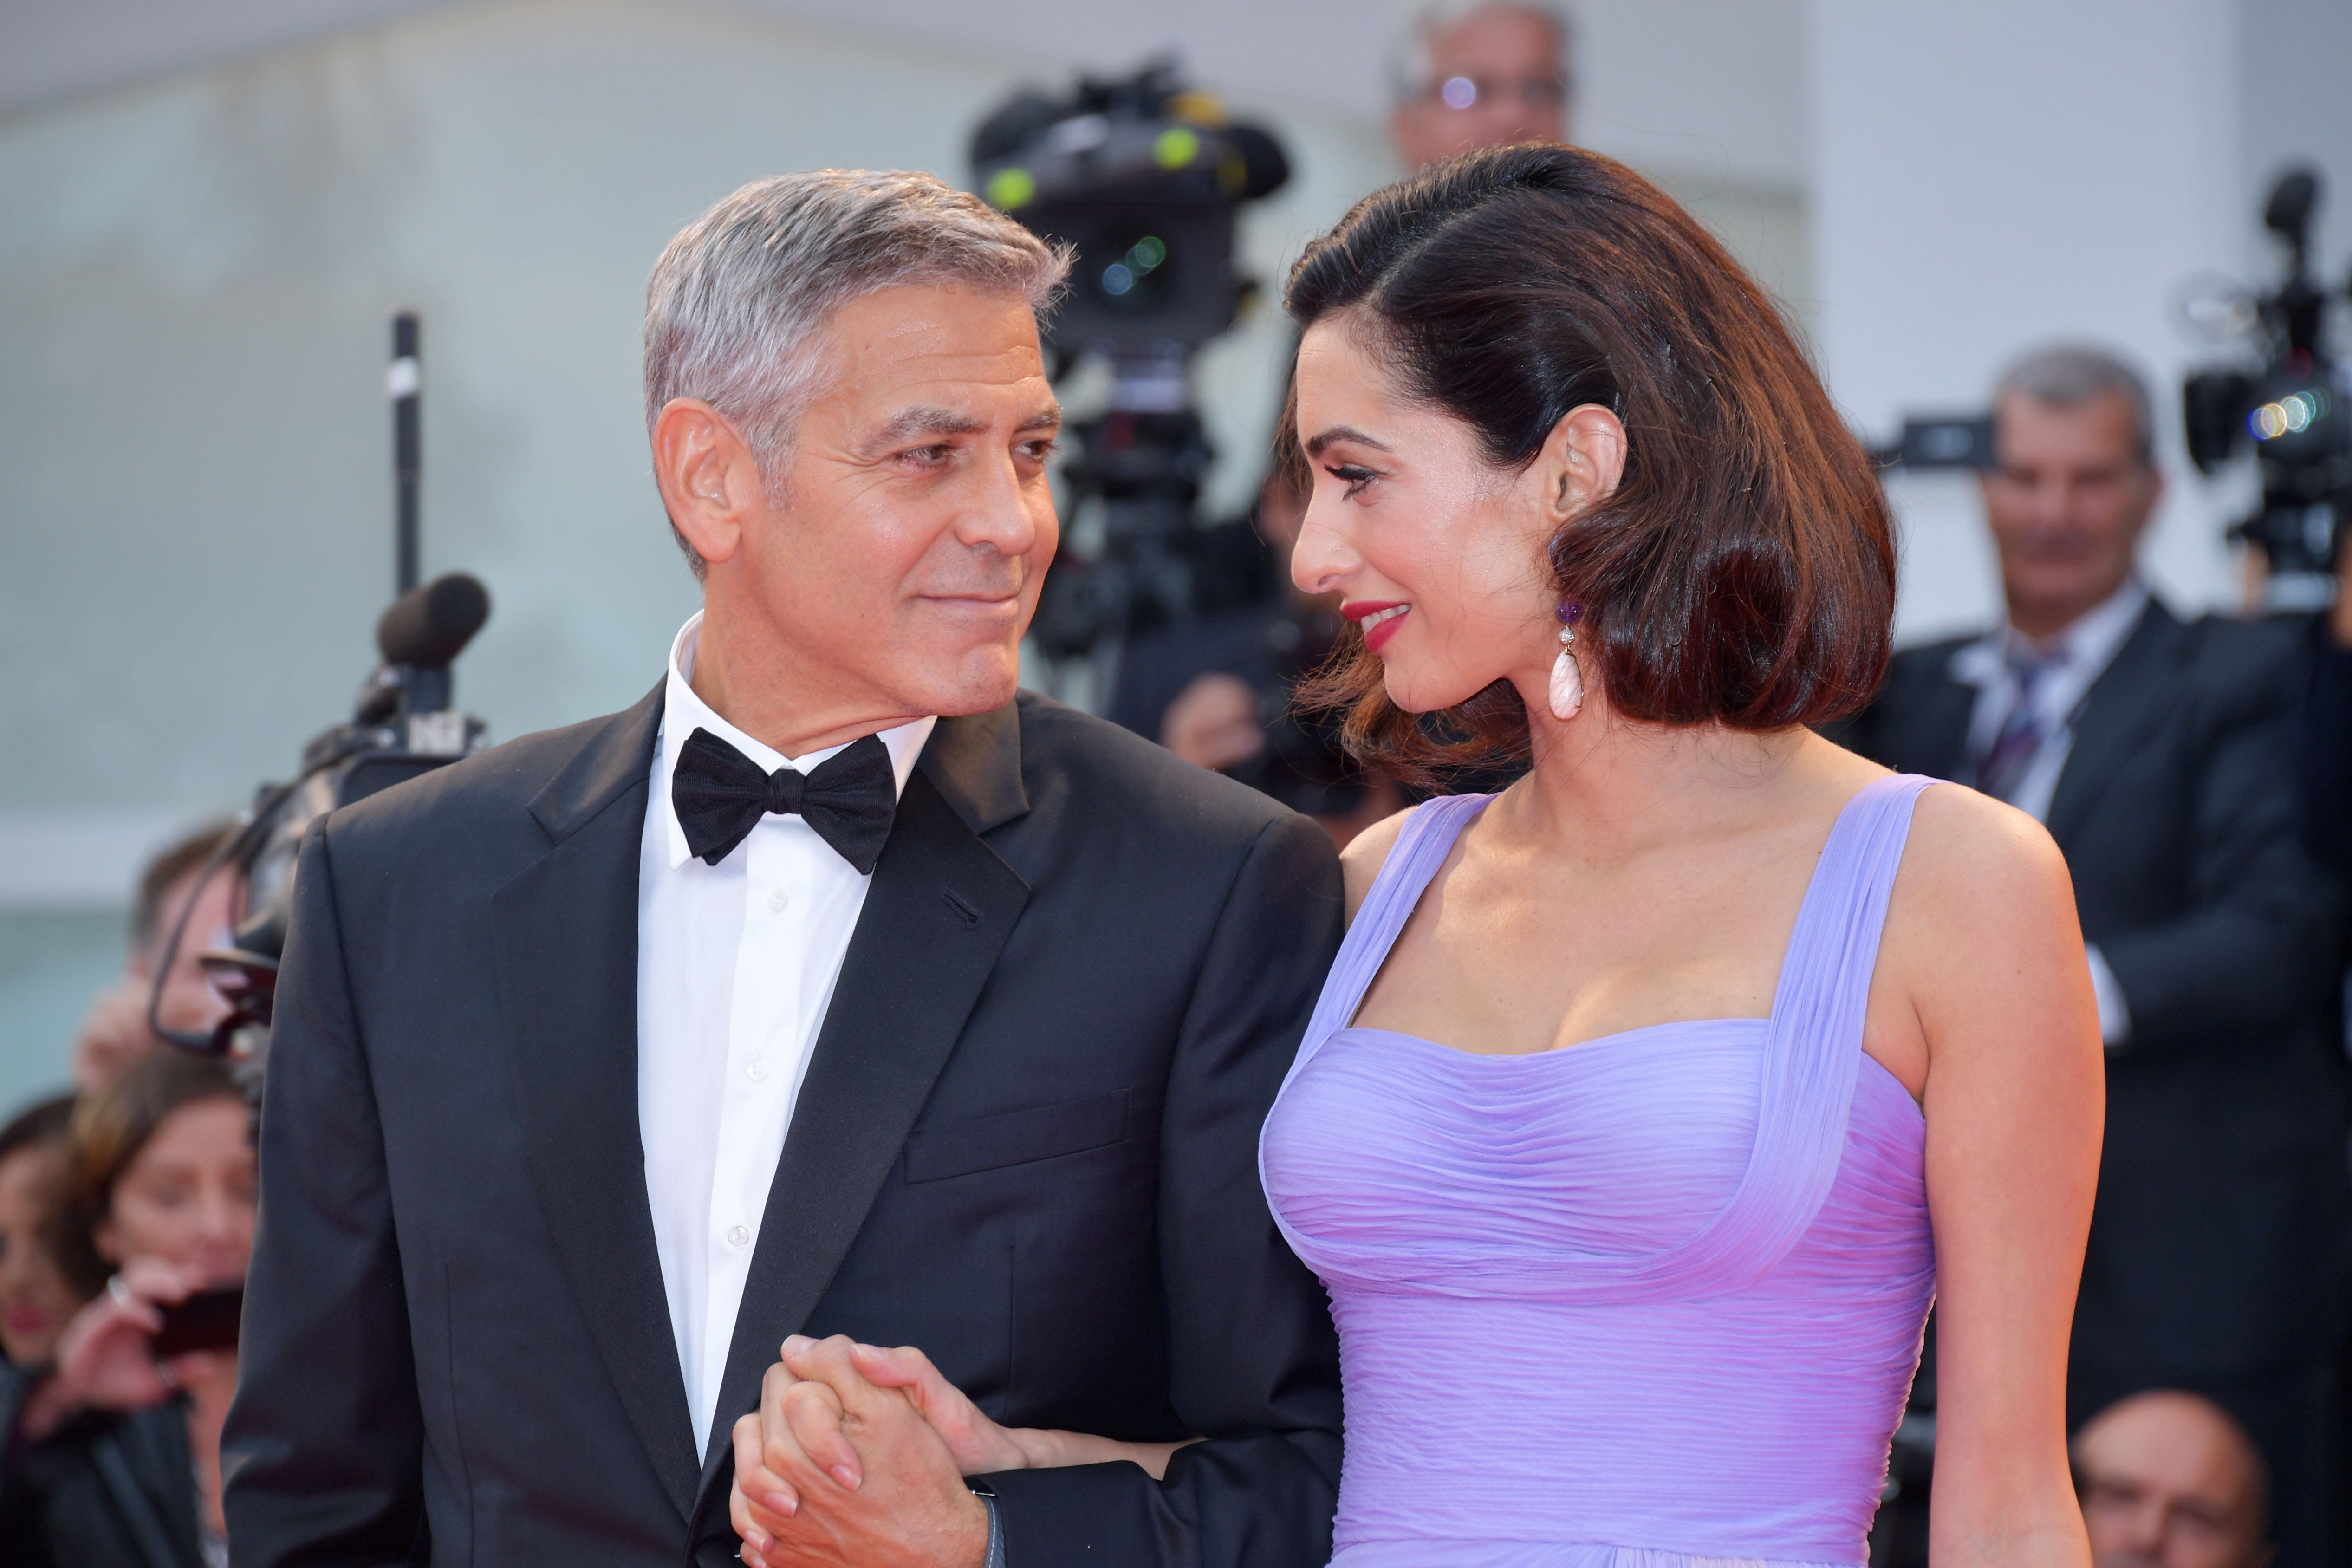 George Clooney Talks About His Love For Amal, And It's Devastatingly Romantic